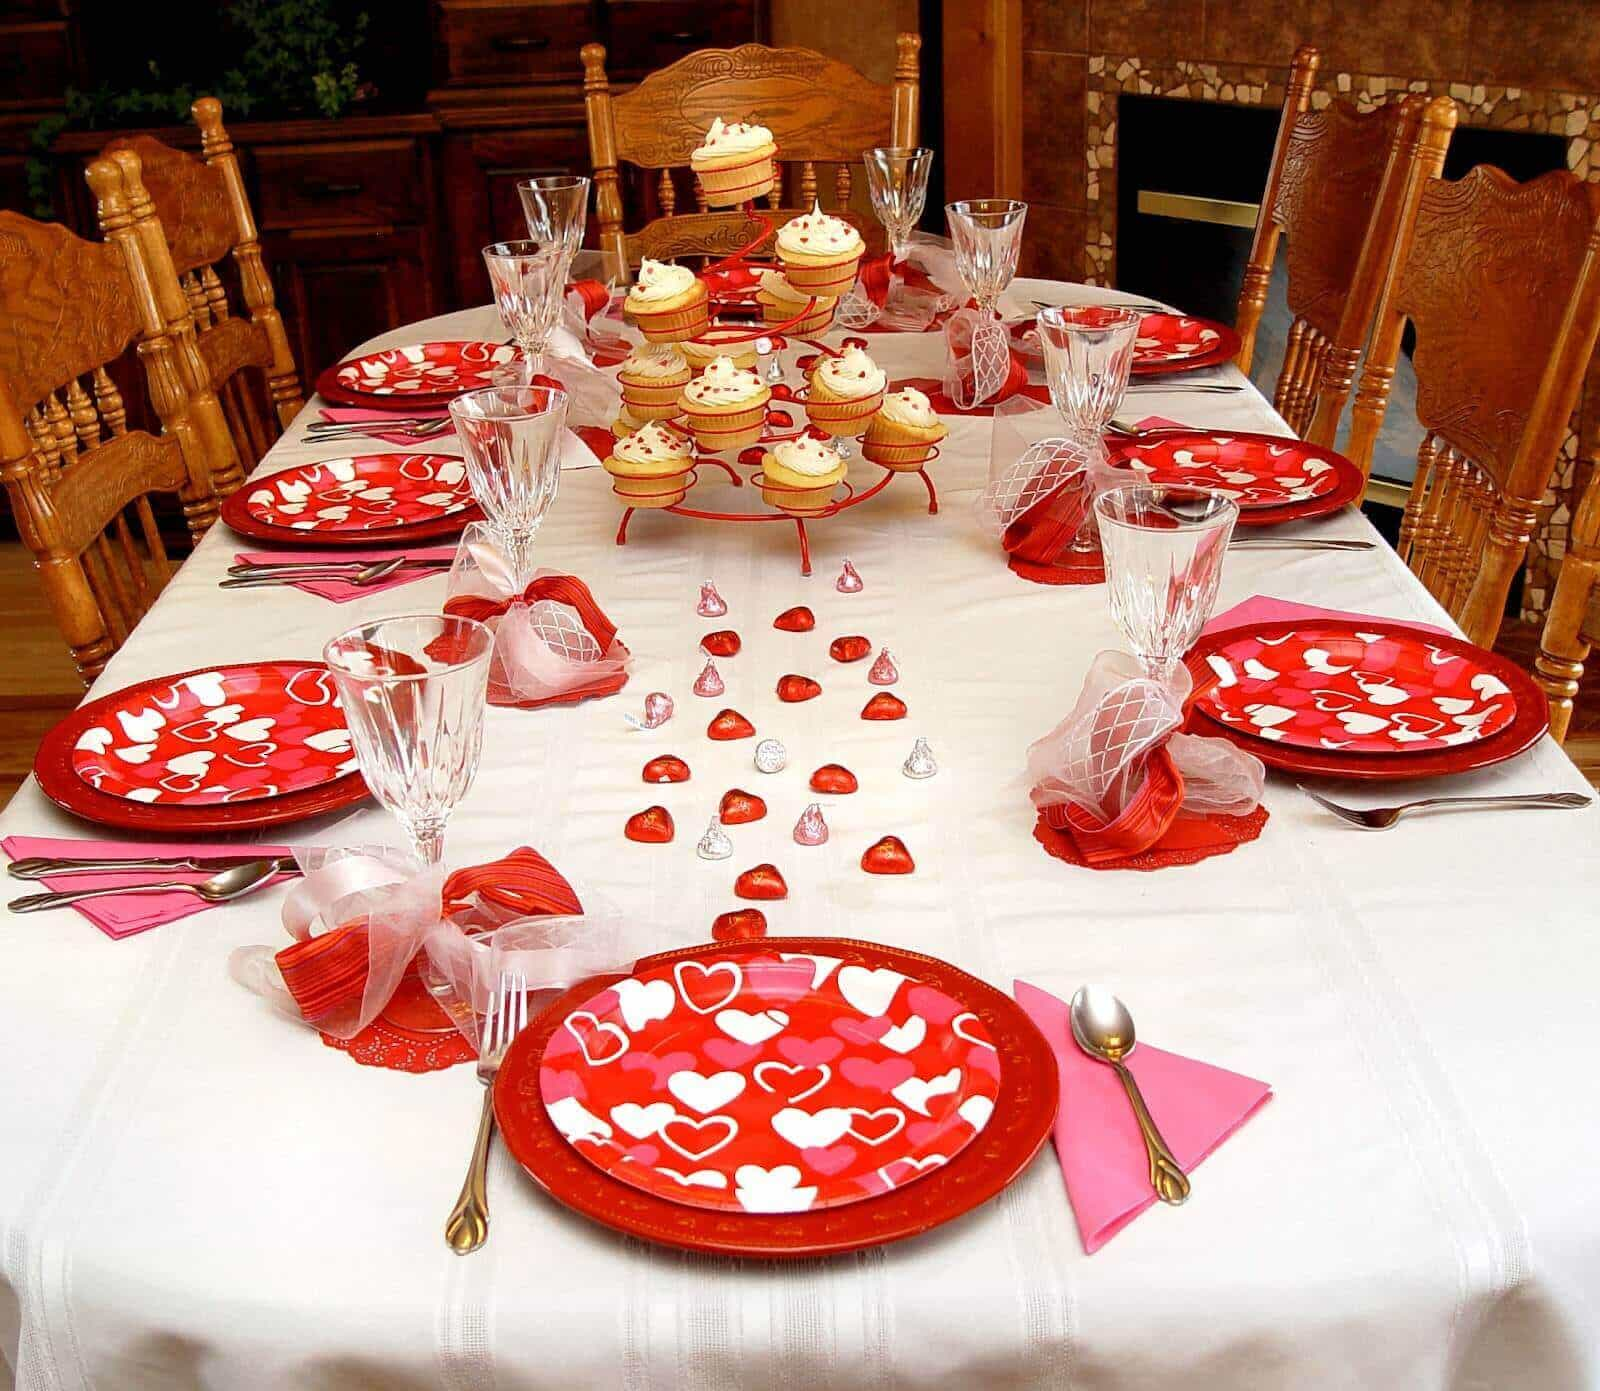 Amazing Table Decoration Ideas for Valentine's Day - The ...